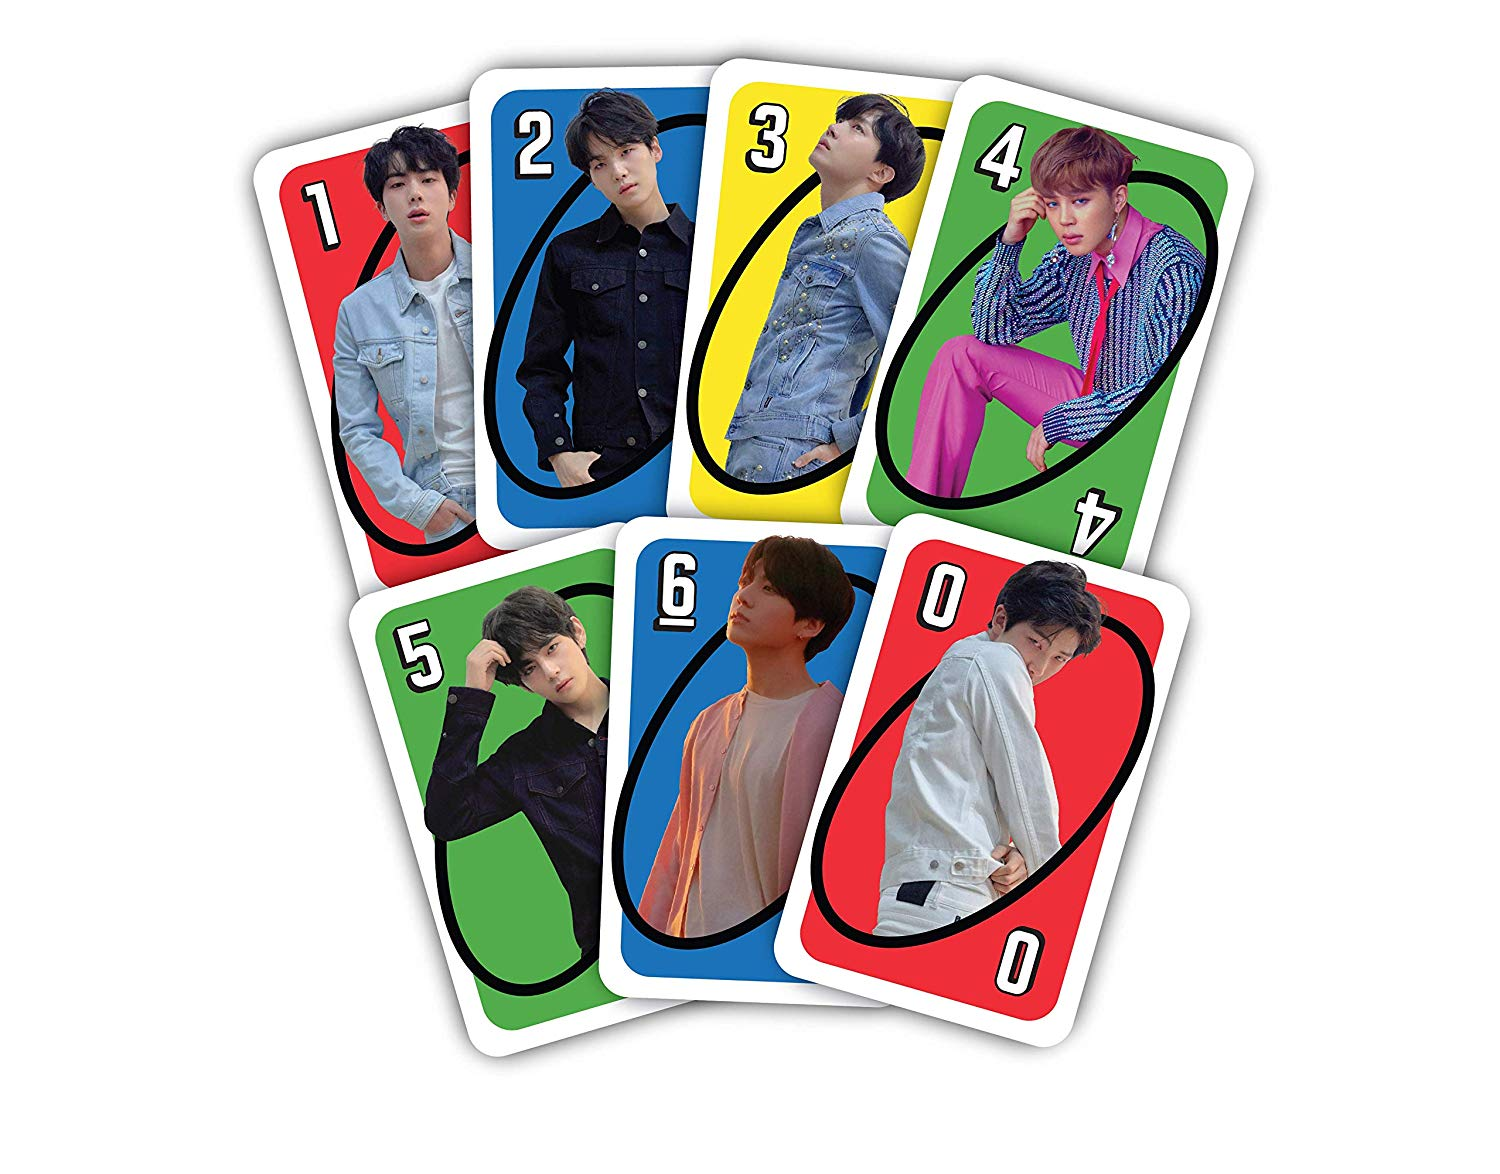 Mattel previews its BTS fashion dolls and UNO card game 20